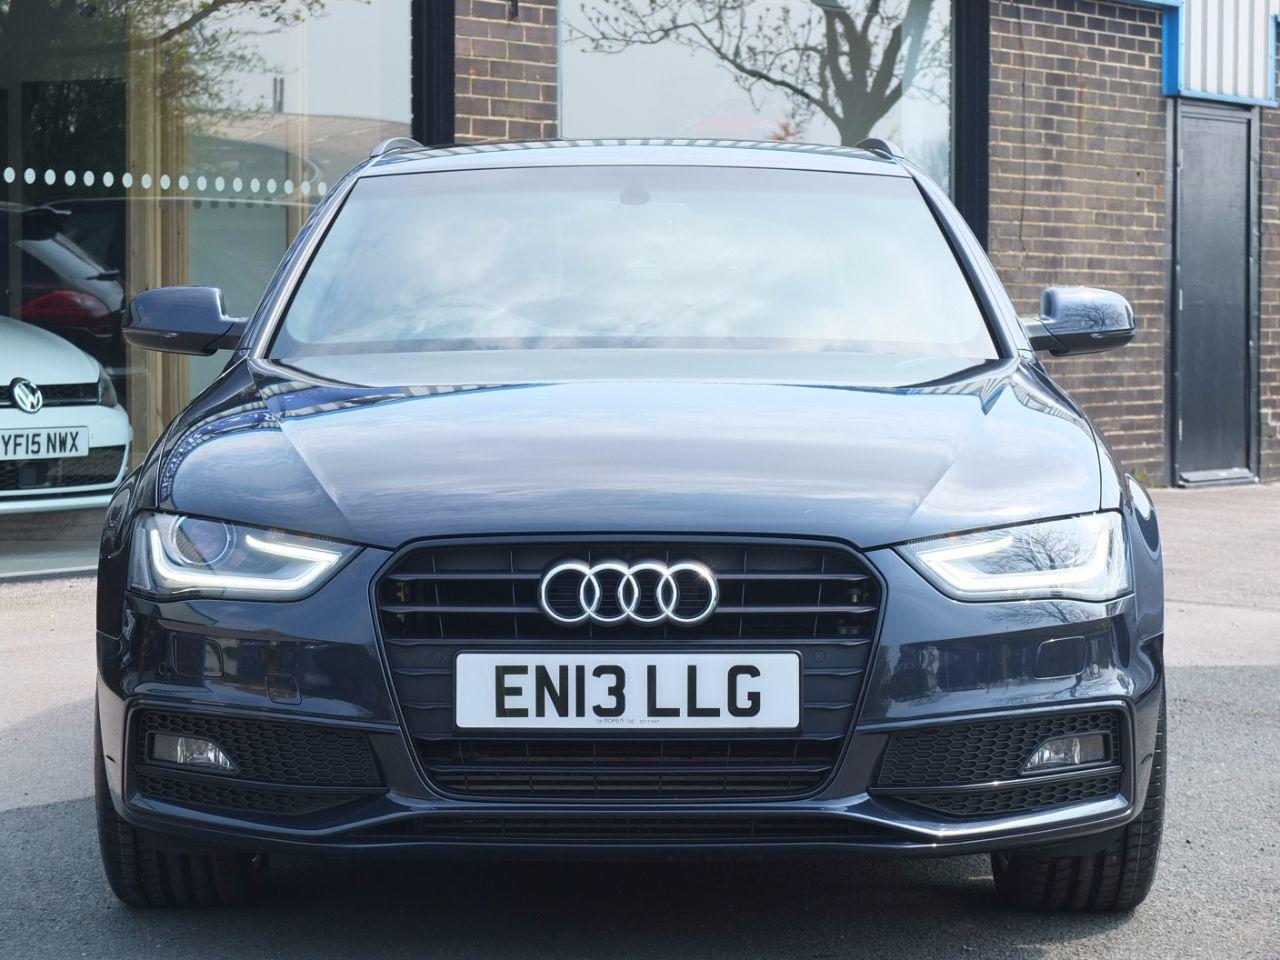 Audi A4 Avant 2.0 TDI Black Edition 177ps Estate Diesel Moonlight Blue Metallic